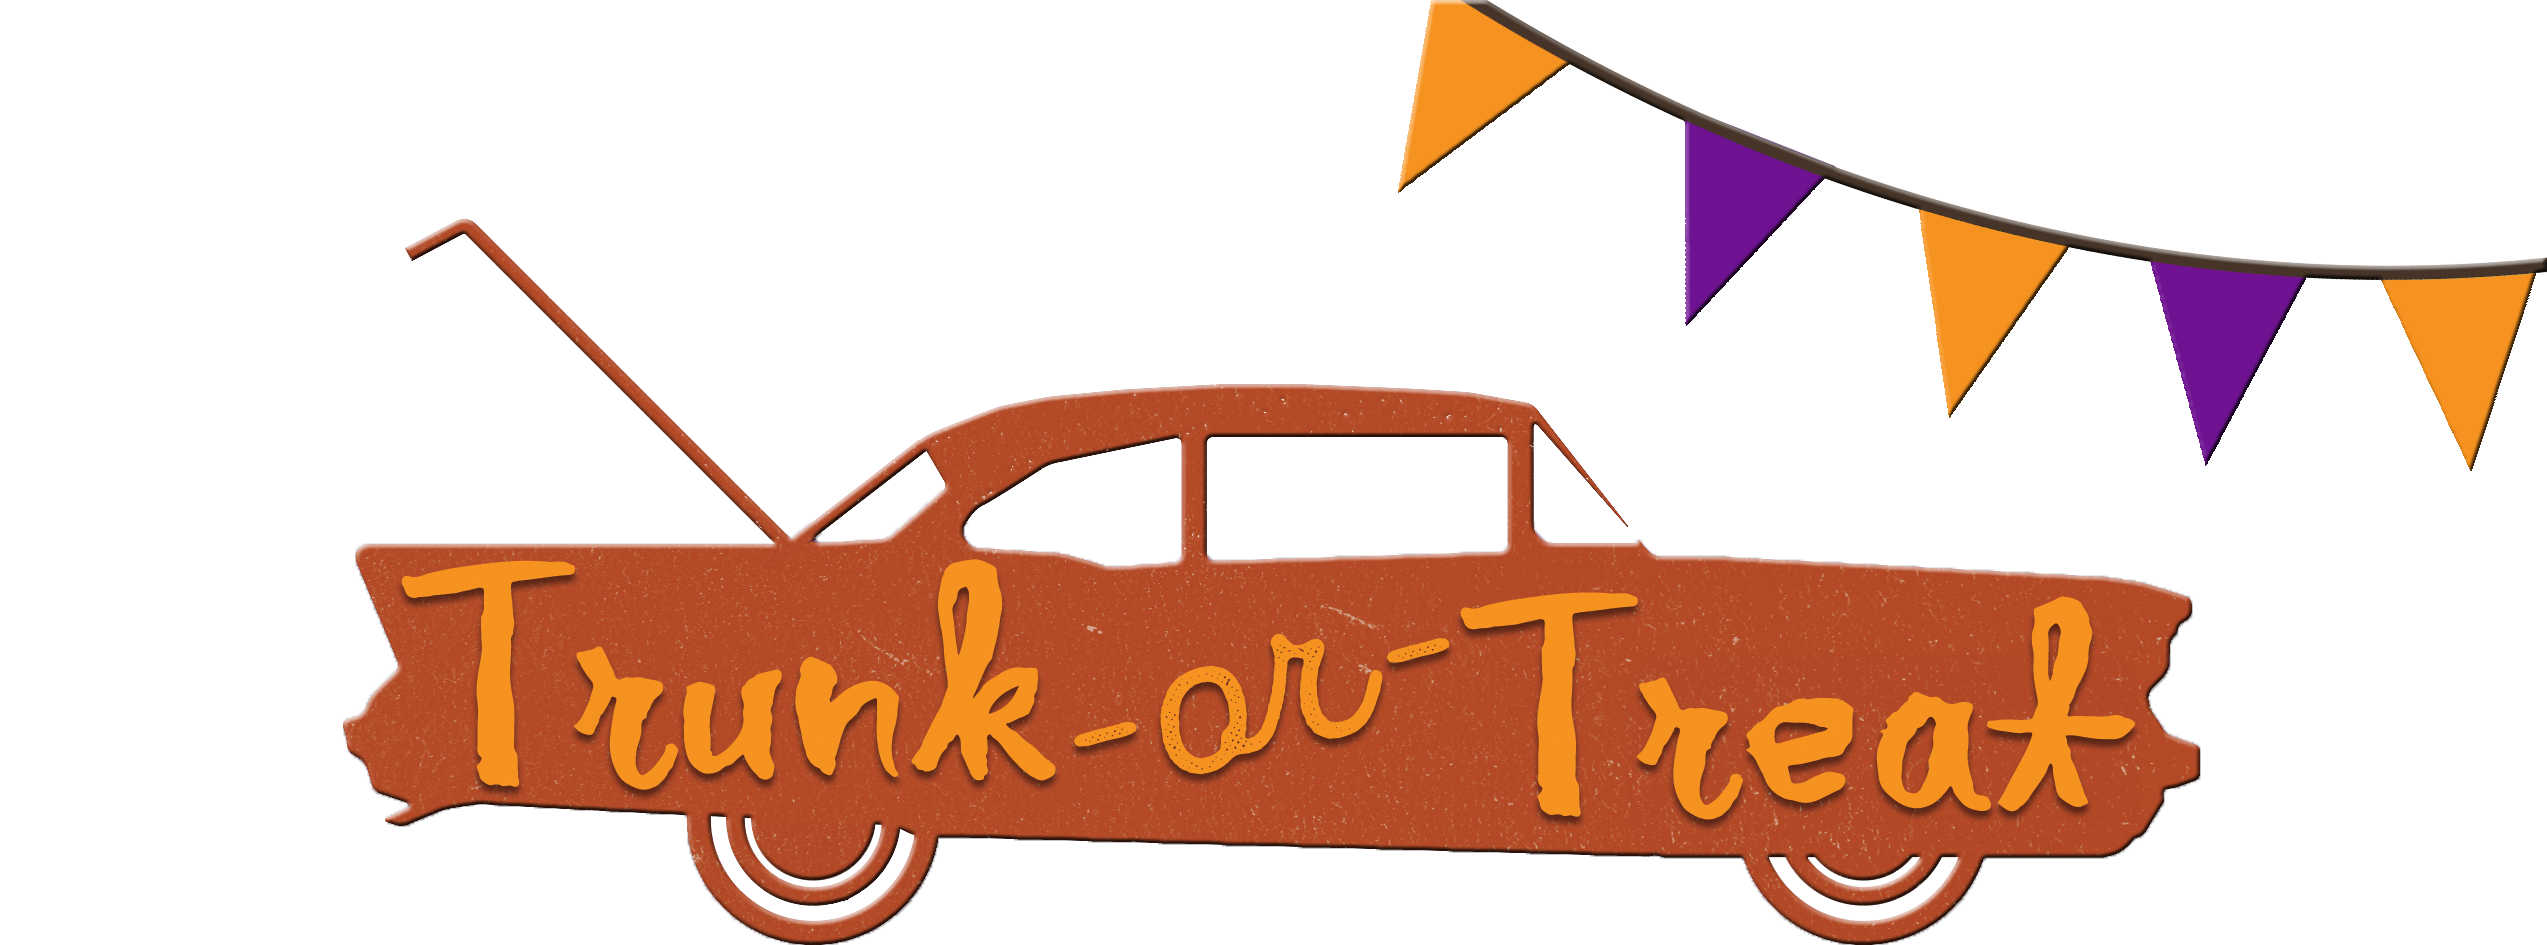 Trunk-or-Treat! Oct 22 - Garber Linwood clipart free download